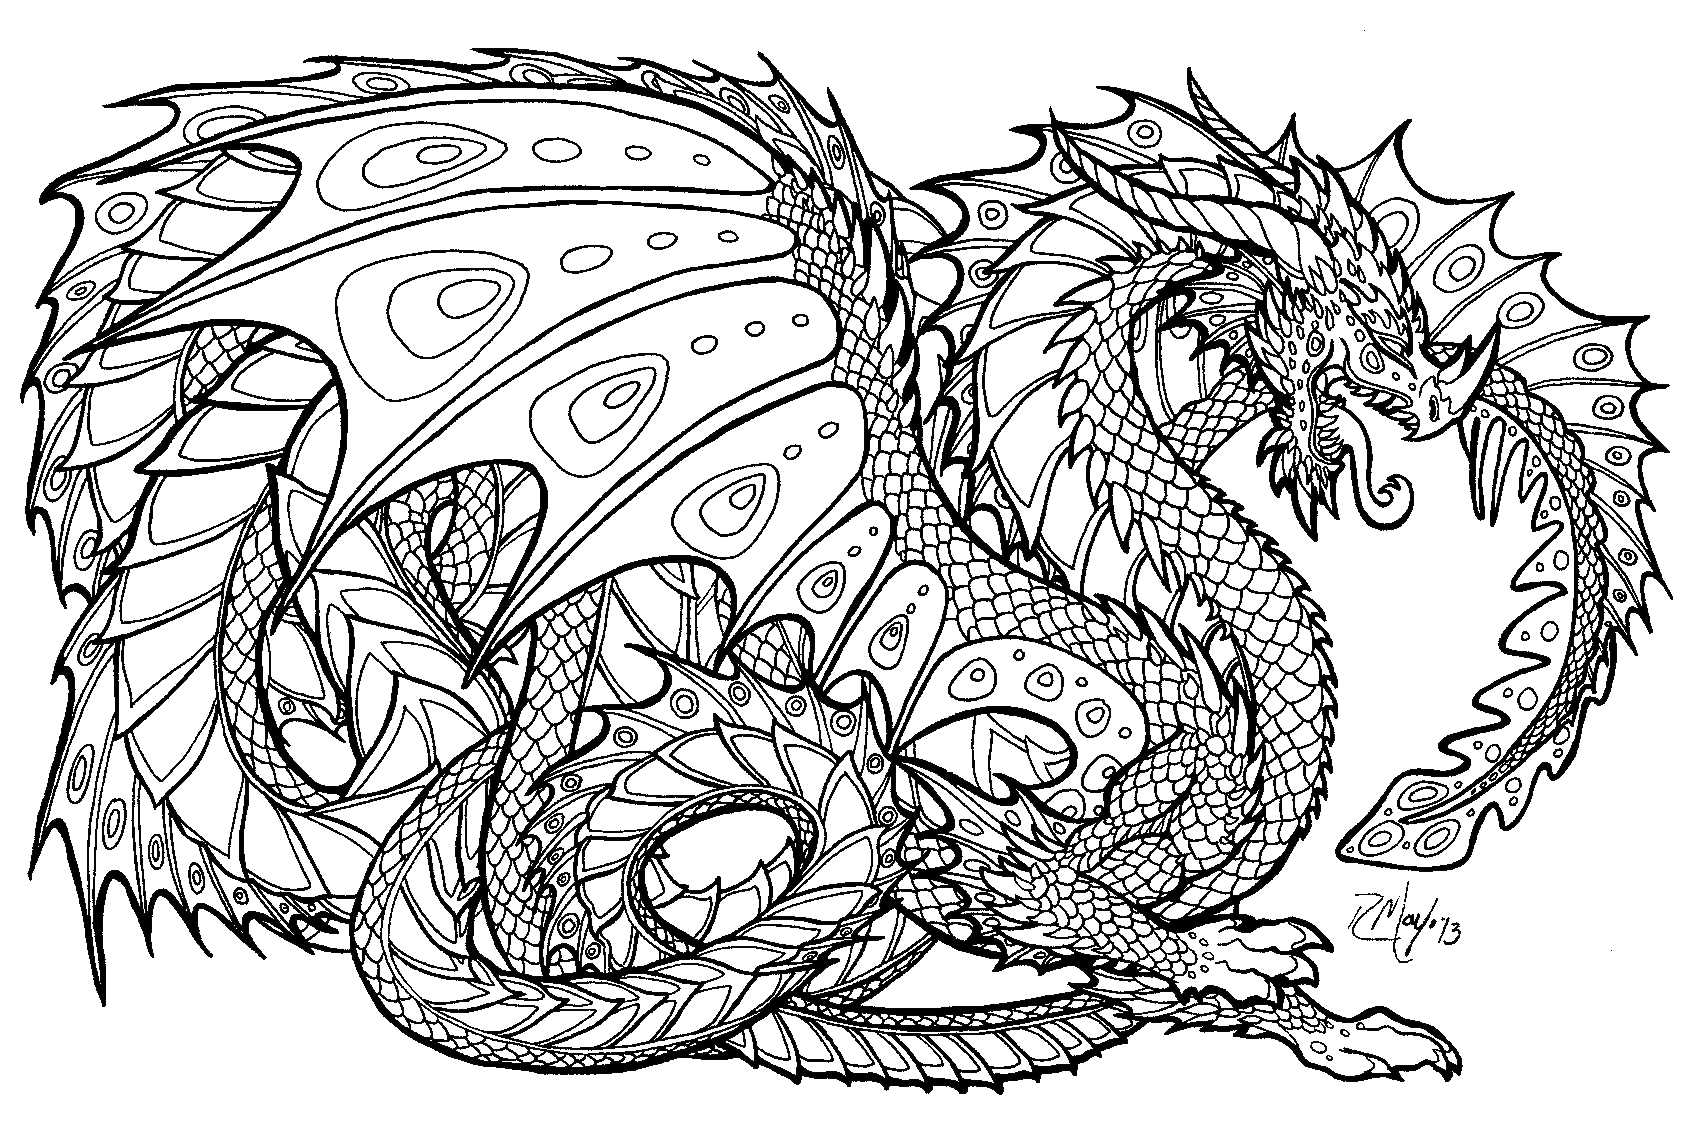 difficult spring coloring pages | Bird coloring pages, Animal ... | 1136x1688